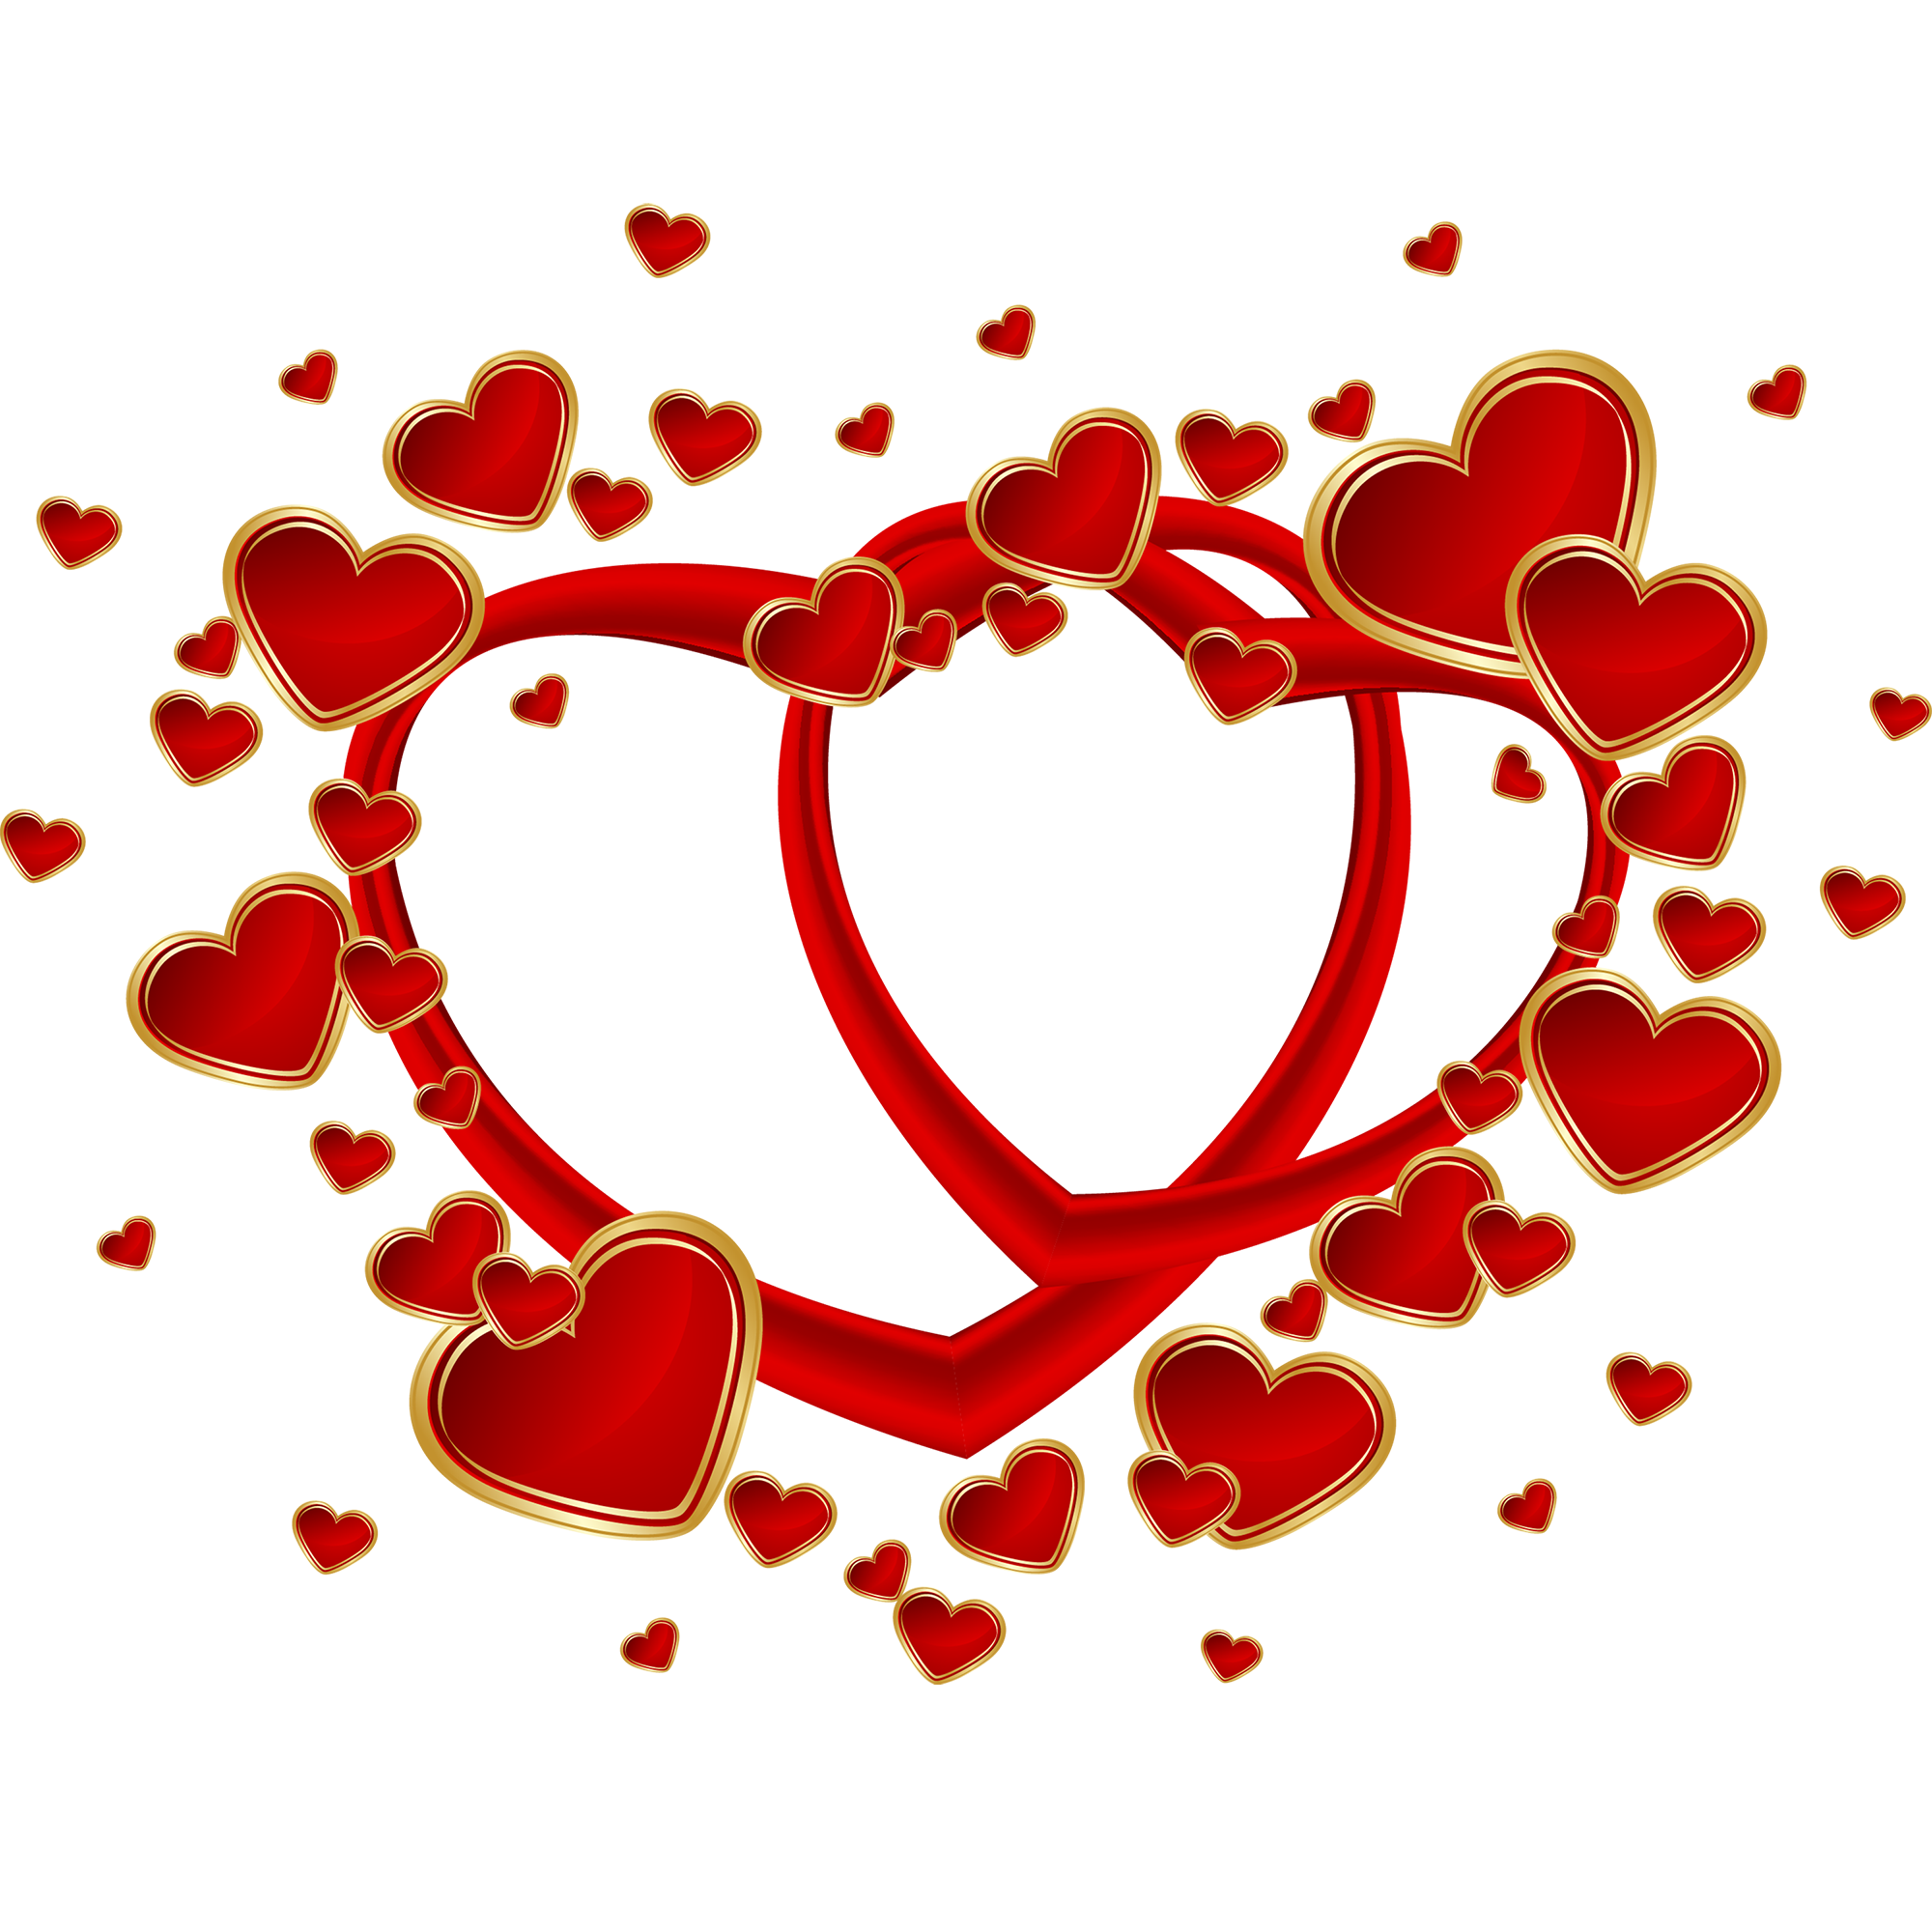 Happy Valentines Day Transparent 6608 Transparentpng